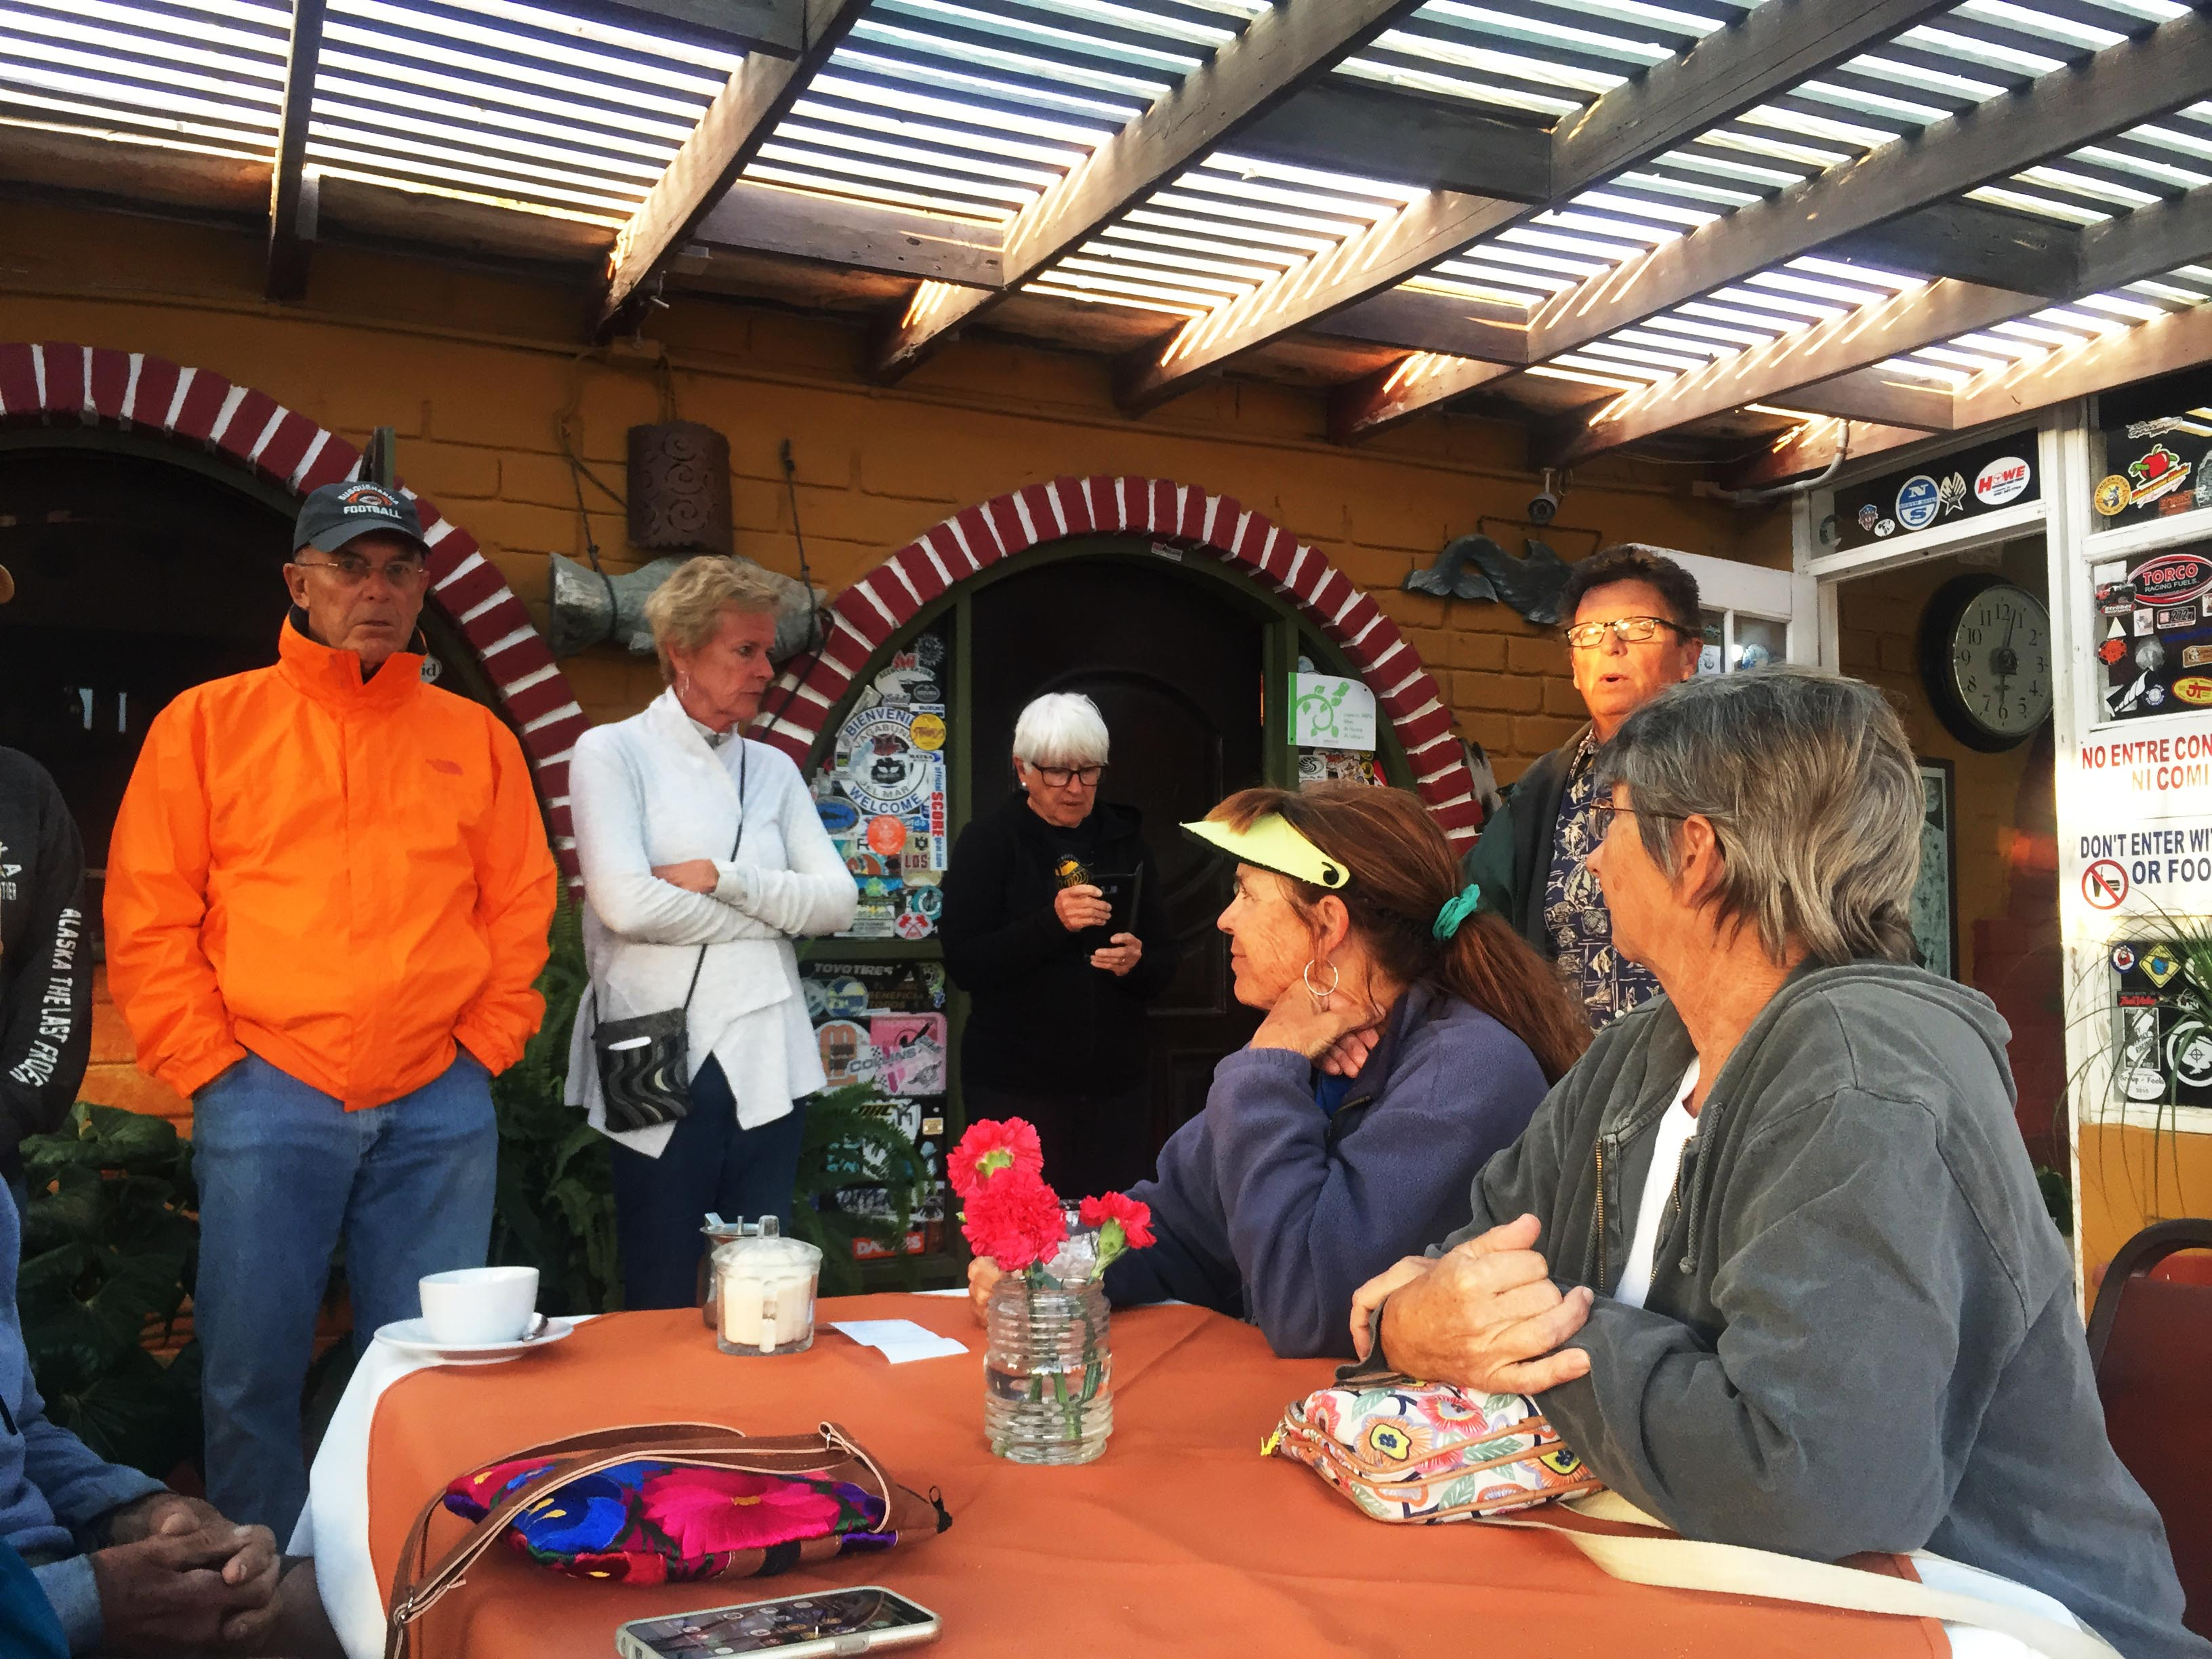 Some of the group at the patio restaurant at Malarrimo RV Park. Left to right are Bill, Karen, Myrna, Nancy, John, and Alison